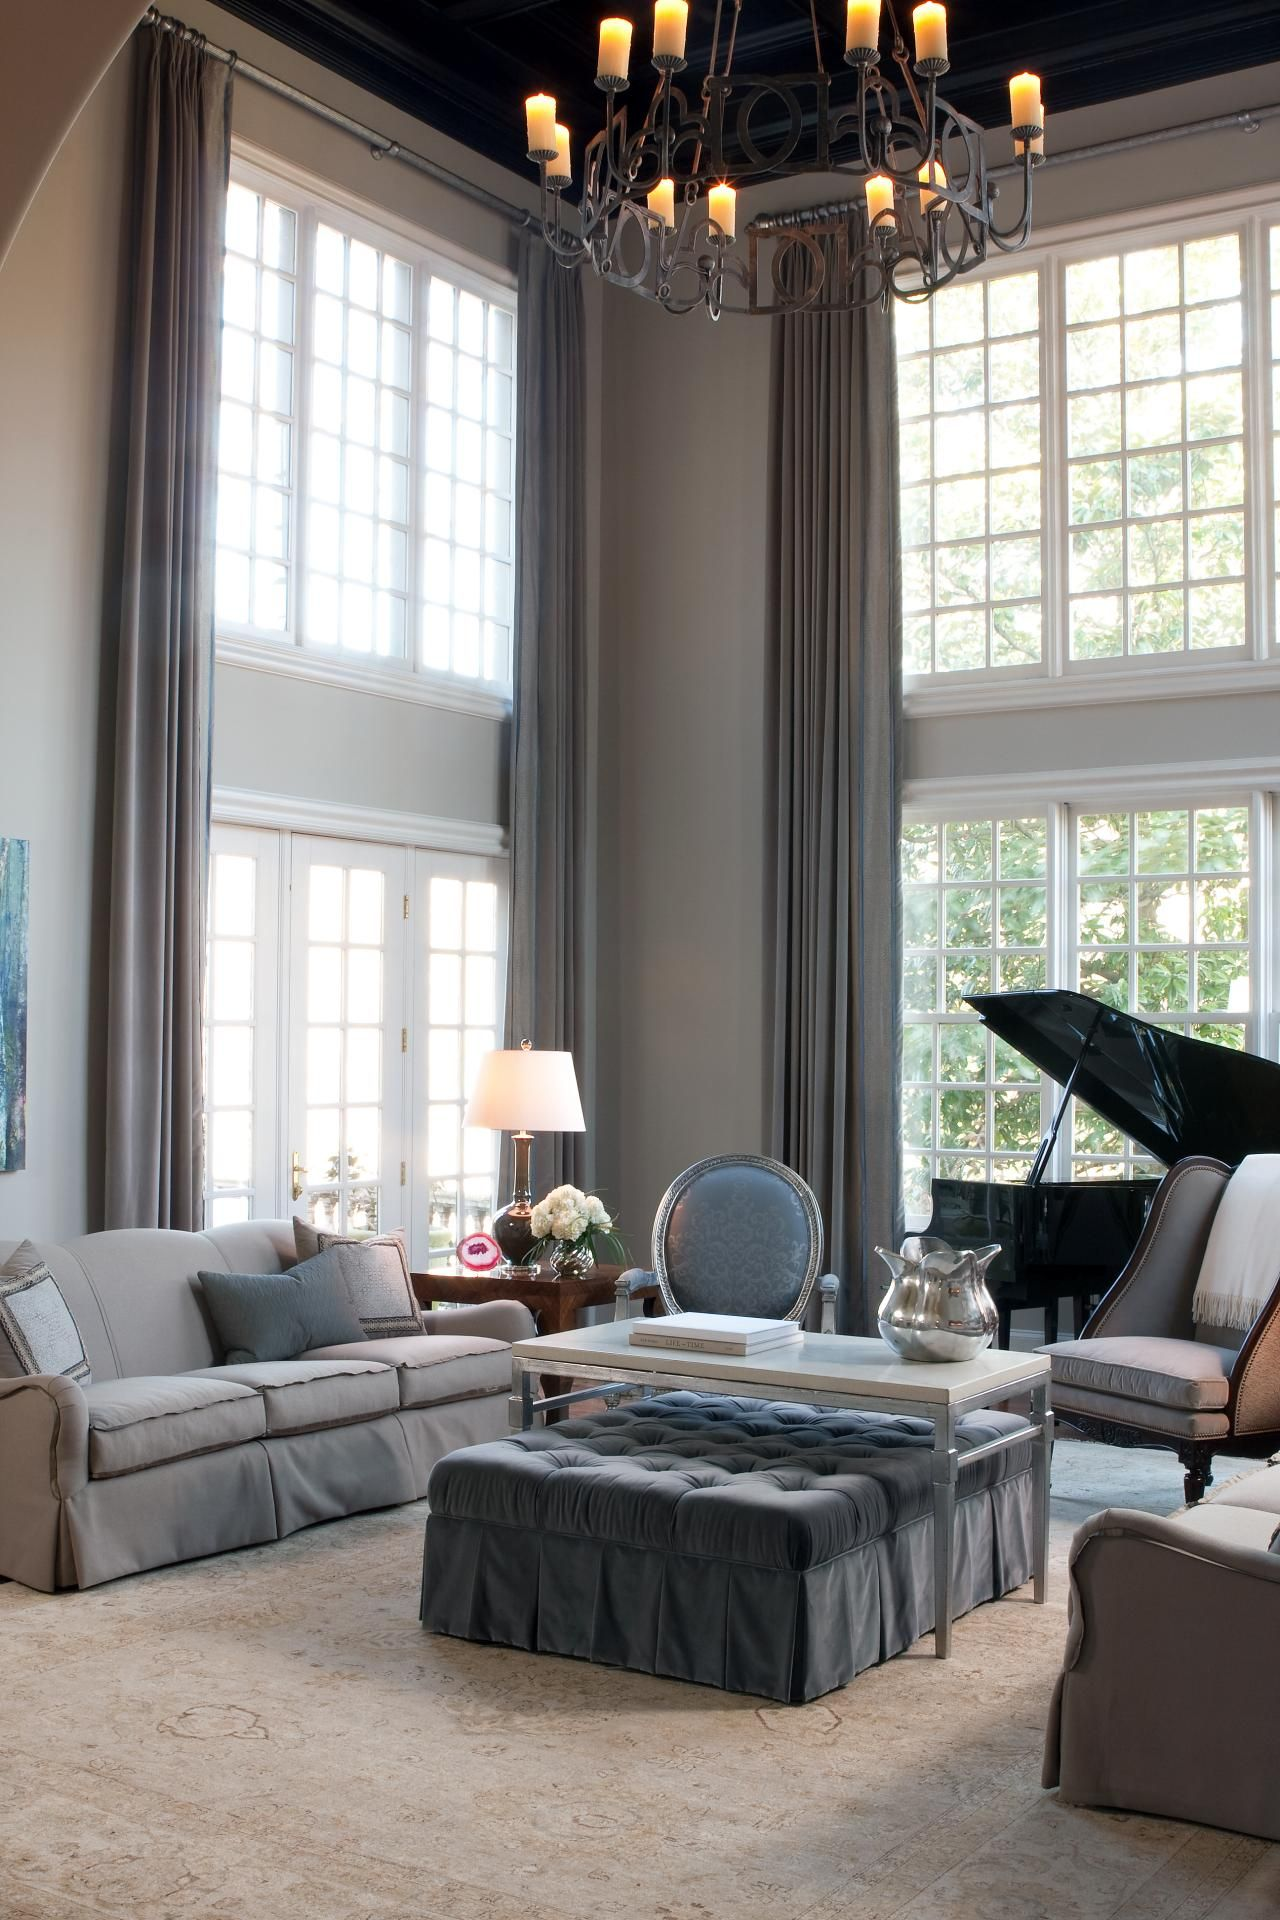 Formal Living Room With Two-Story Window Treatments | High ...